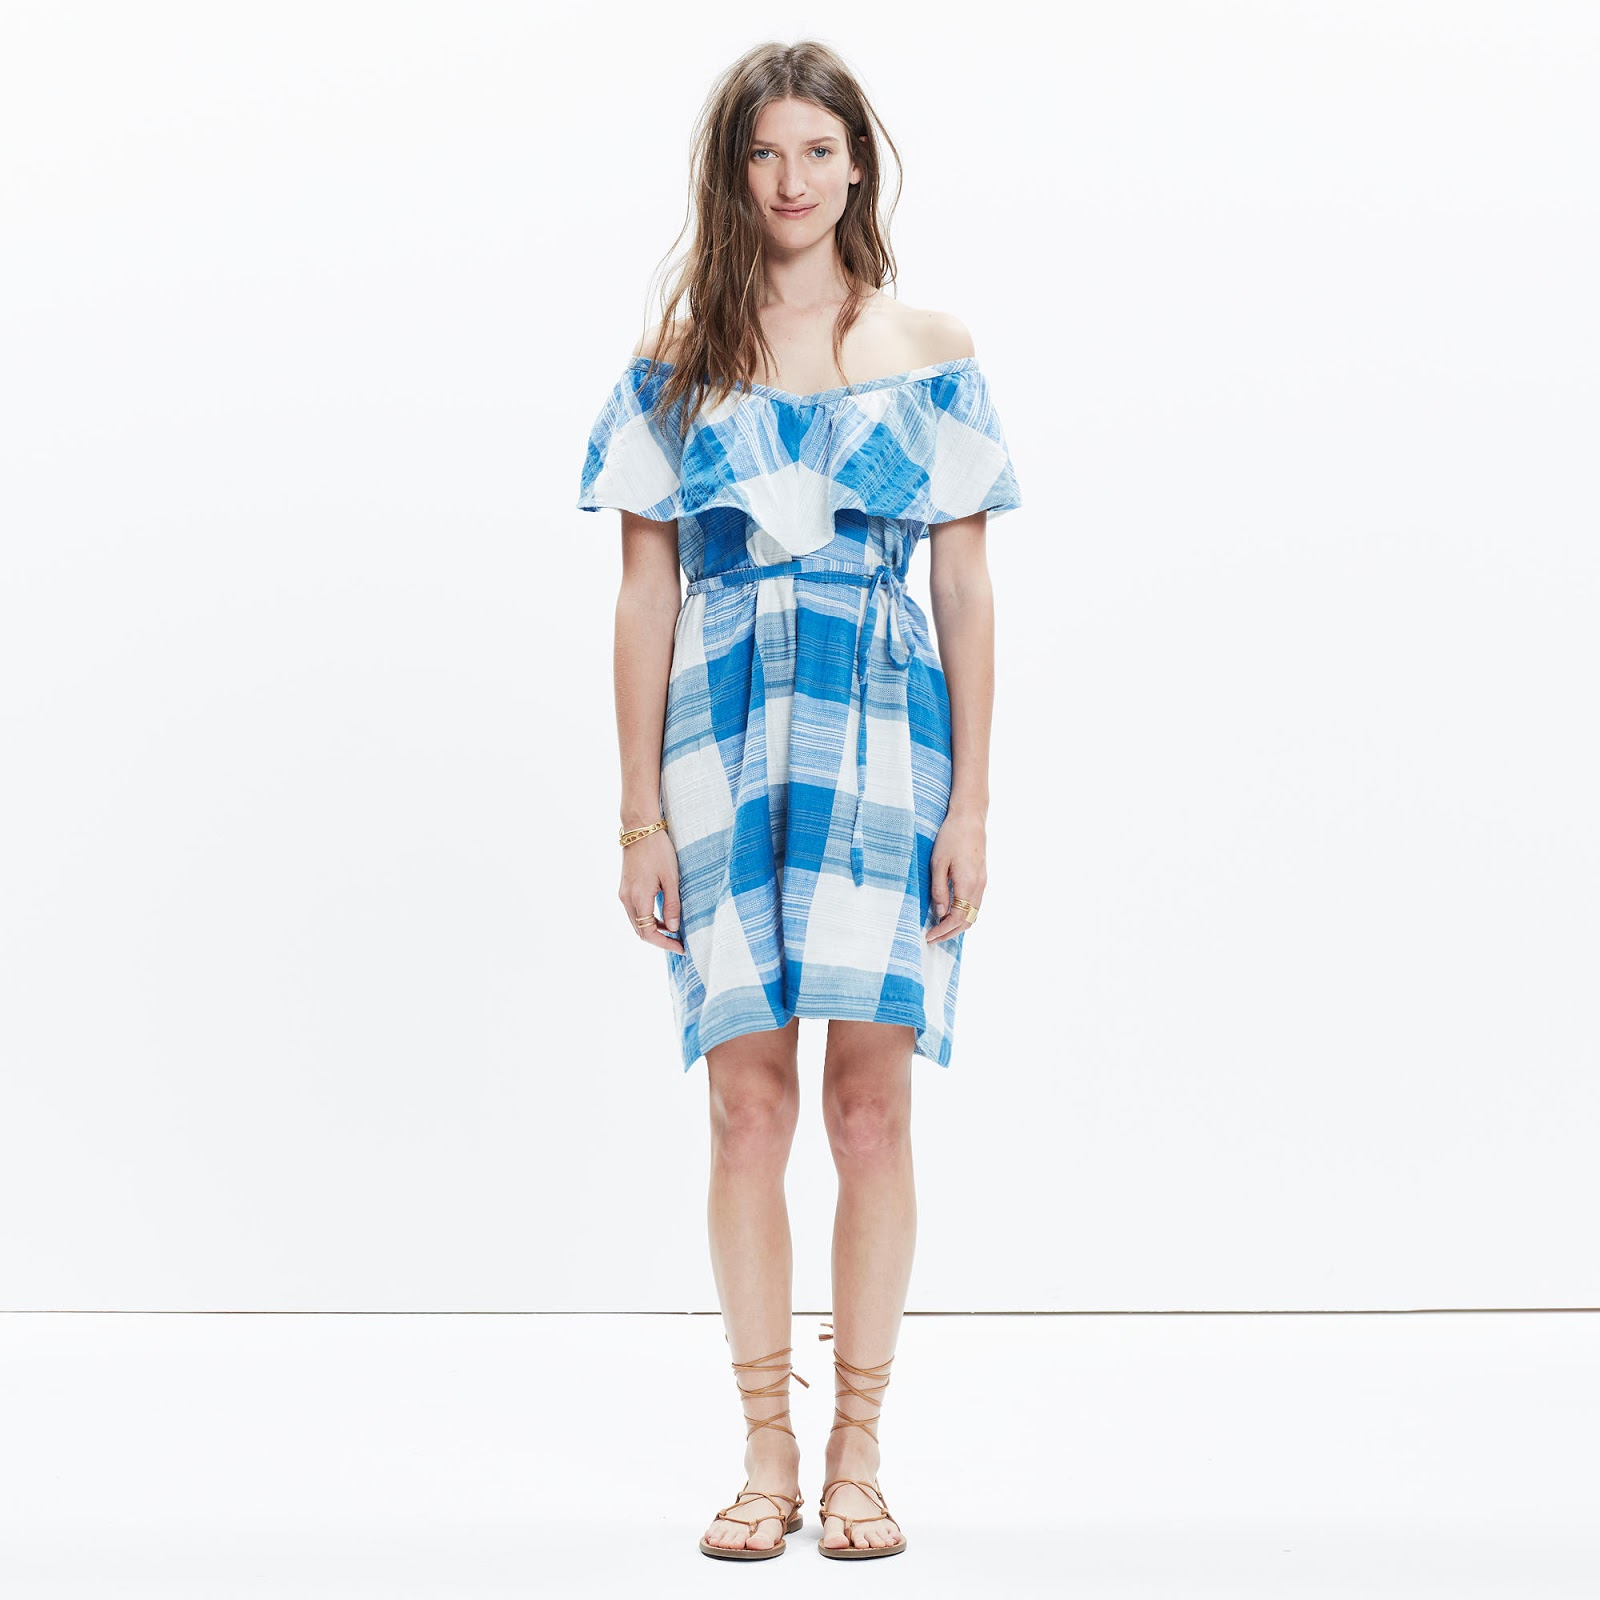 Ace&jig adriatic dress